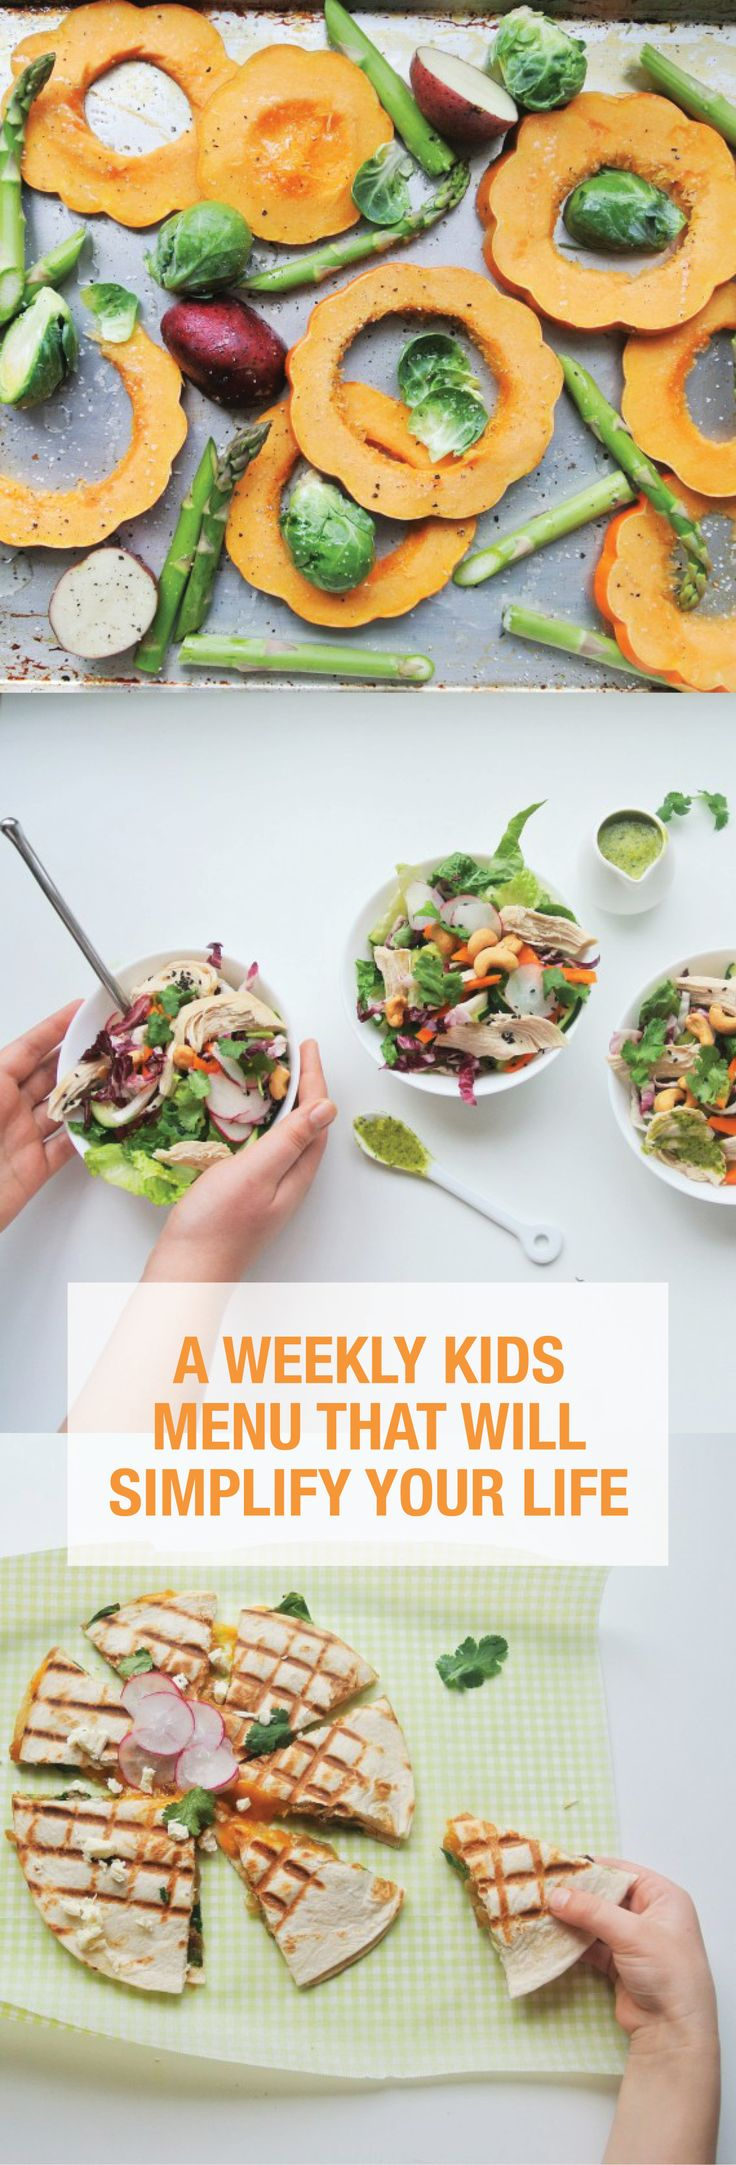 A Weekly Kids Menu That Will Simplify Your Life | Martha Stewart Living - Are you in a recipe rut for healthy family meals? Well, we're here to help! We've put together a simple weekly meal plan for kids -- all dietitian-approved, mom-approved and kids-approved! This is one kids menu that is sure to please everyone in the family.